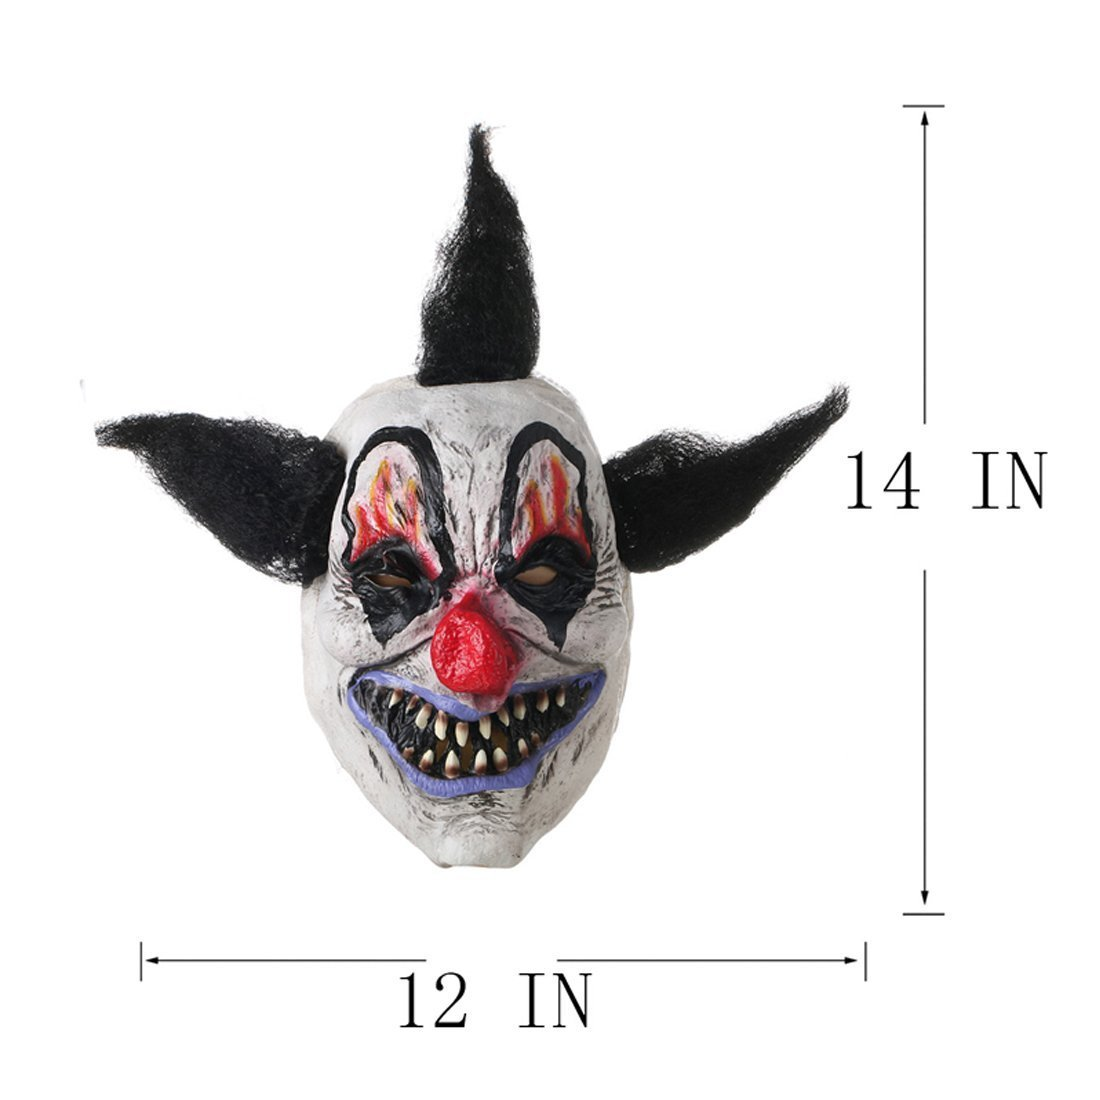 2pcs// Set Scary Clown Mask Halloween Party Costume Decorations Creepy Latex Mask WANHAOSHUIJING CRAFTS MANUFACTURE CO LTD